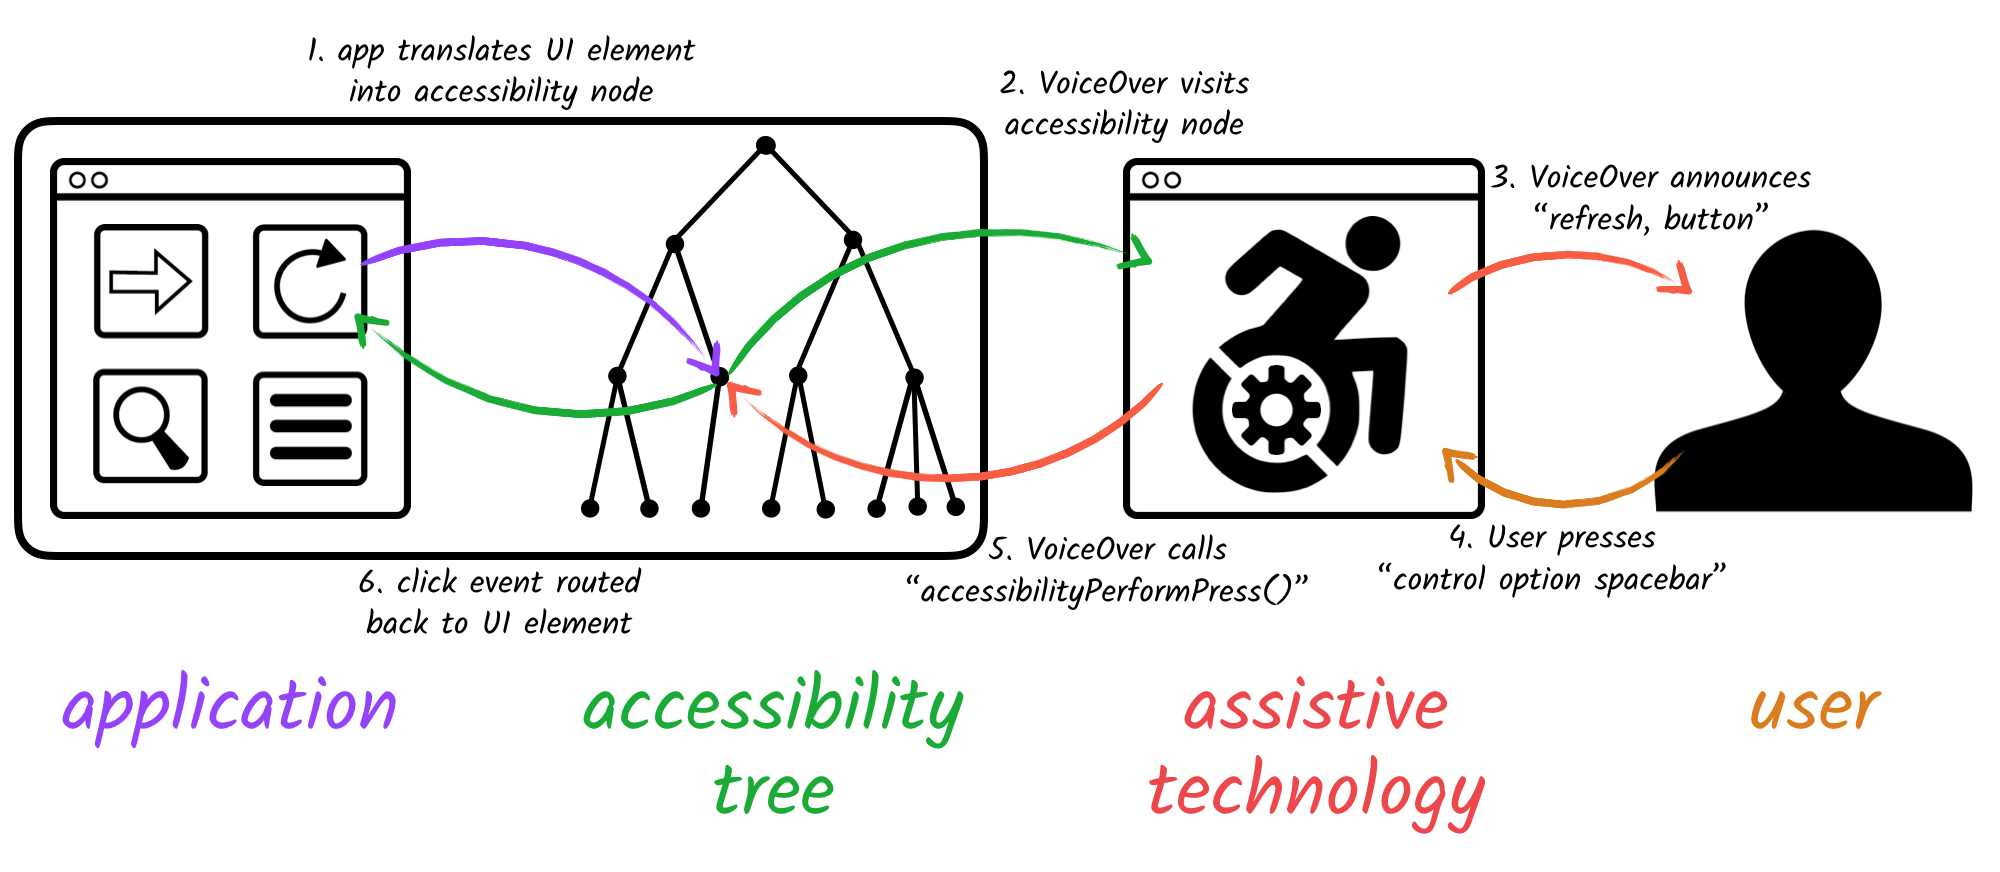 A full round trip from UI element to accessibility node to assistive technology to user to user keypress to accessibility API action method back to UI element